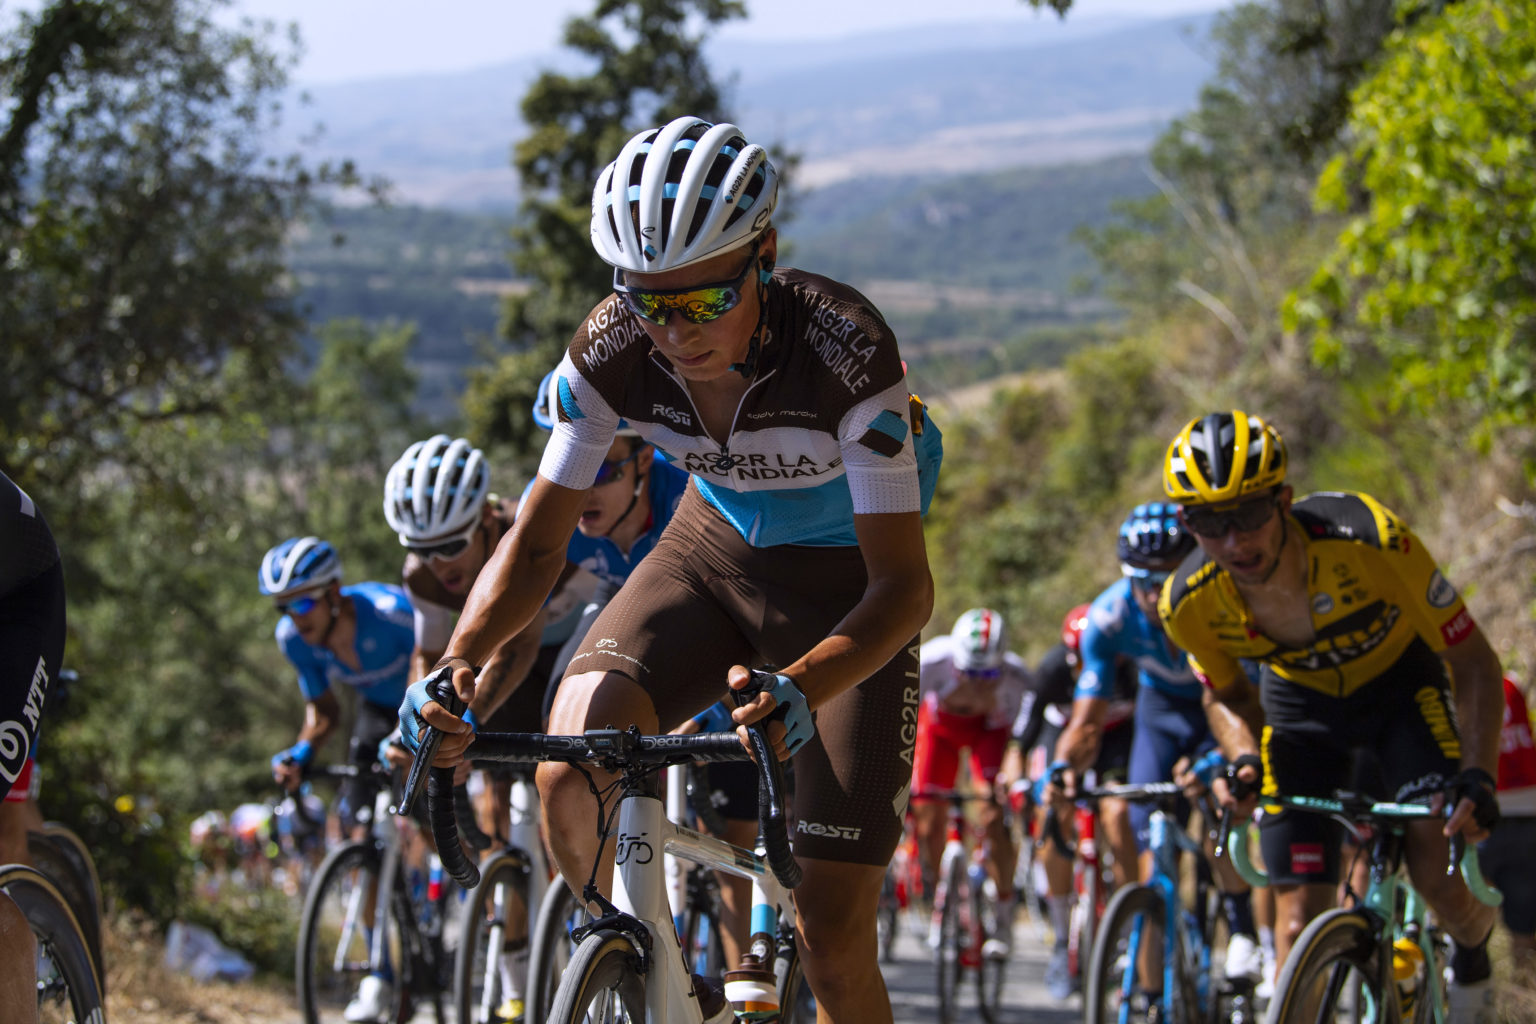 Jaakko Hänninen seguirá creciendo en el AG2R. (Photo by Justin Setterfield/Getty Images)